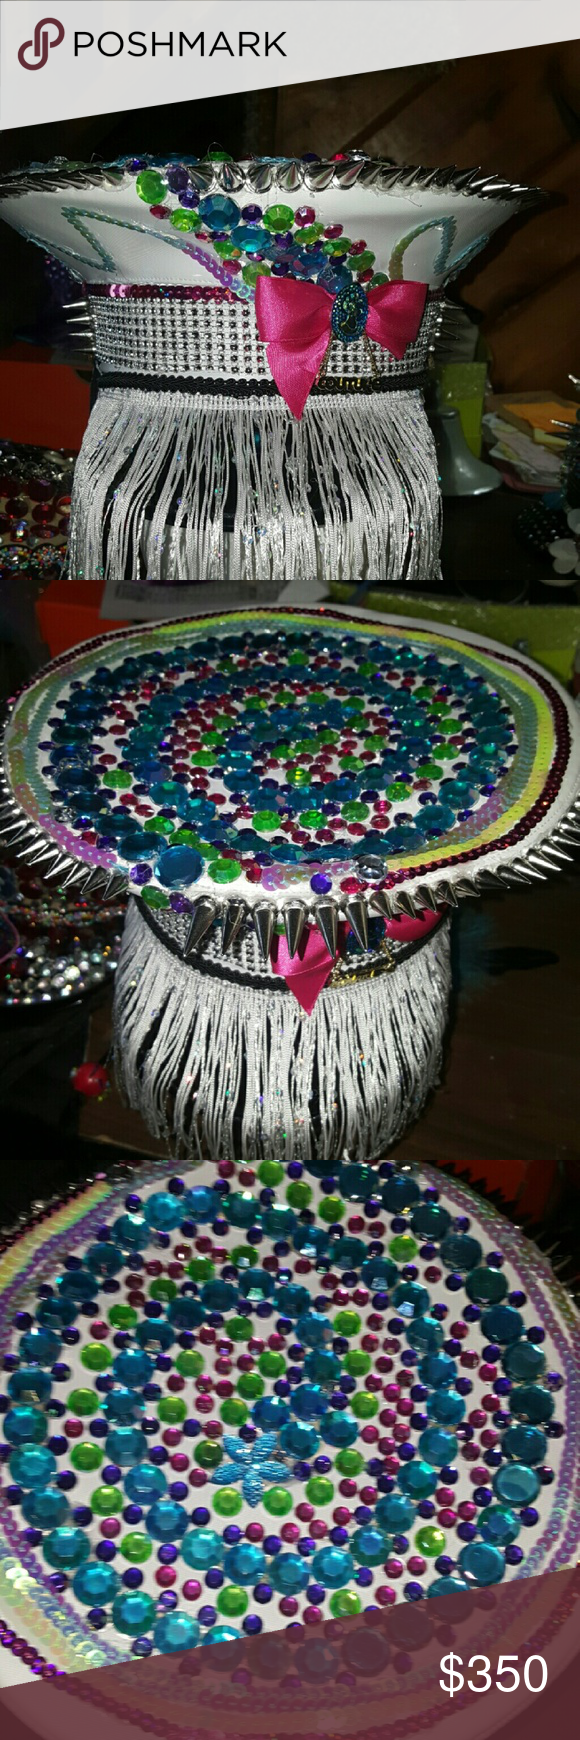 Upcycled Fun Festival Hat! Fun festival hat! These hats are hard to come by and are all handmade... Please feel free to ask any questions or have a custom order made today that would be one of a kind... Please feel free to look at my closet and share and I will make sure if you do the same ..reasonable offers only Cats Eye Design Accessories Hats